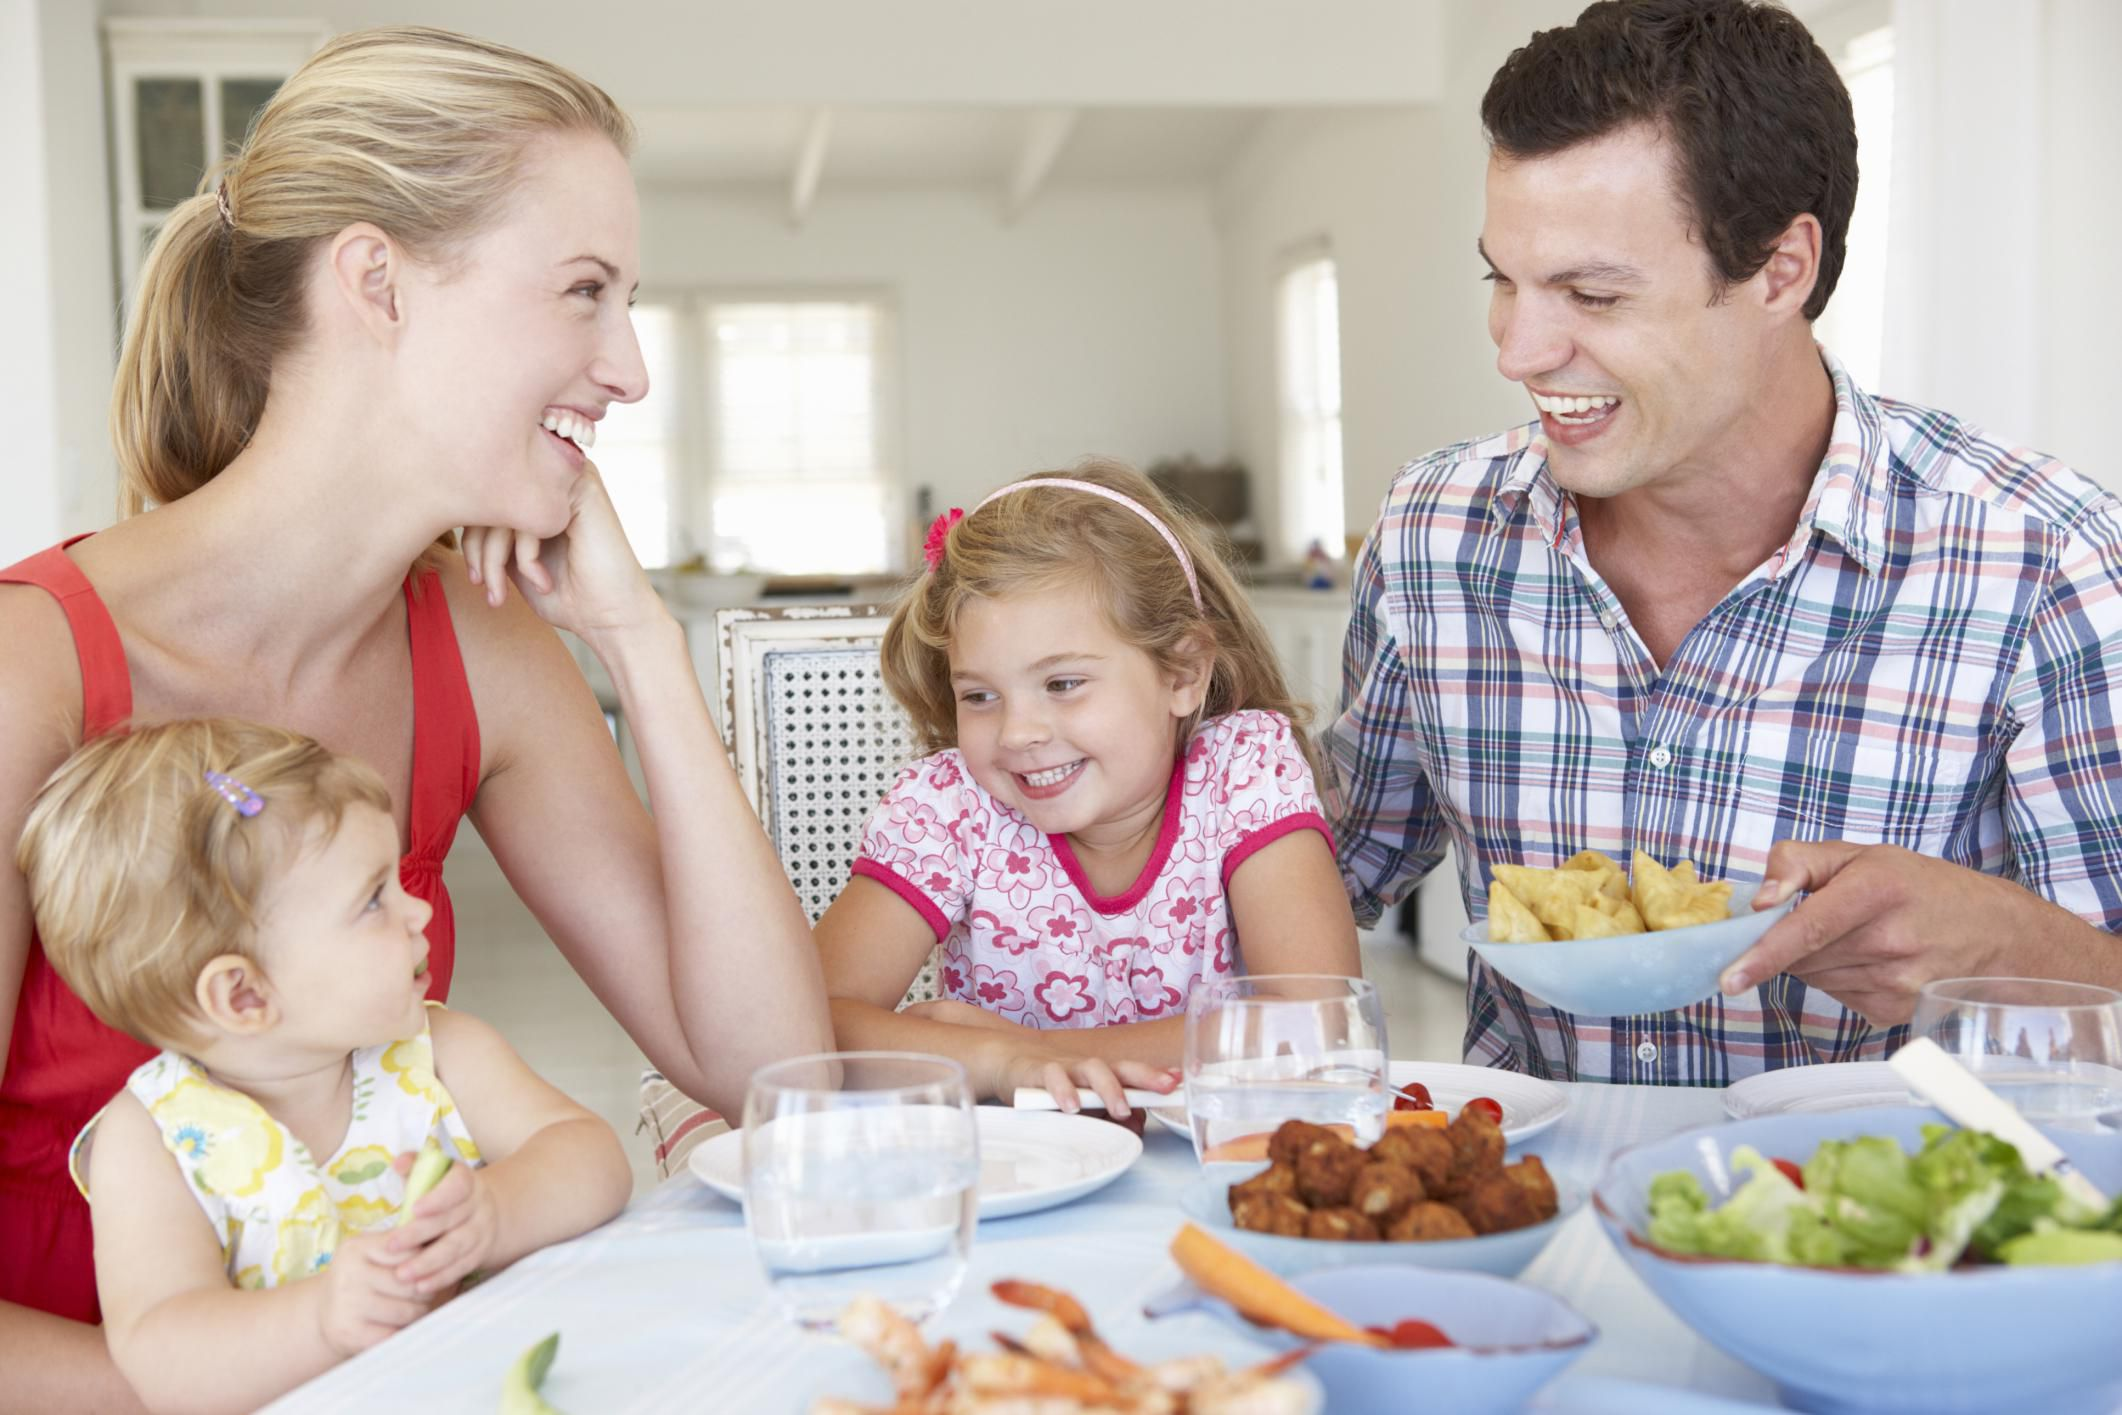 Good Table Manners To Teach Your Kids